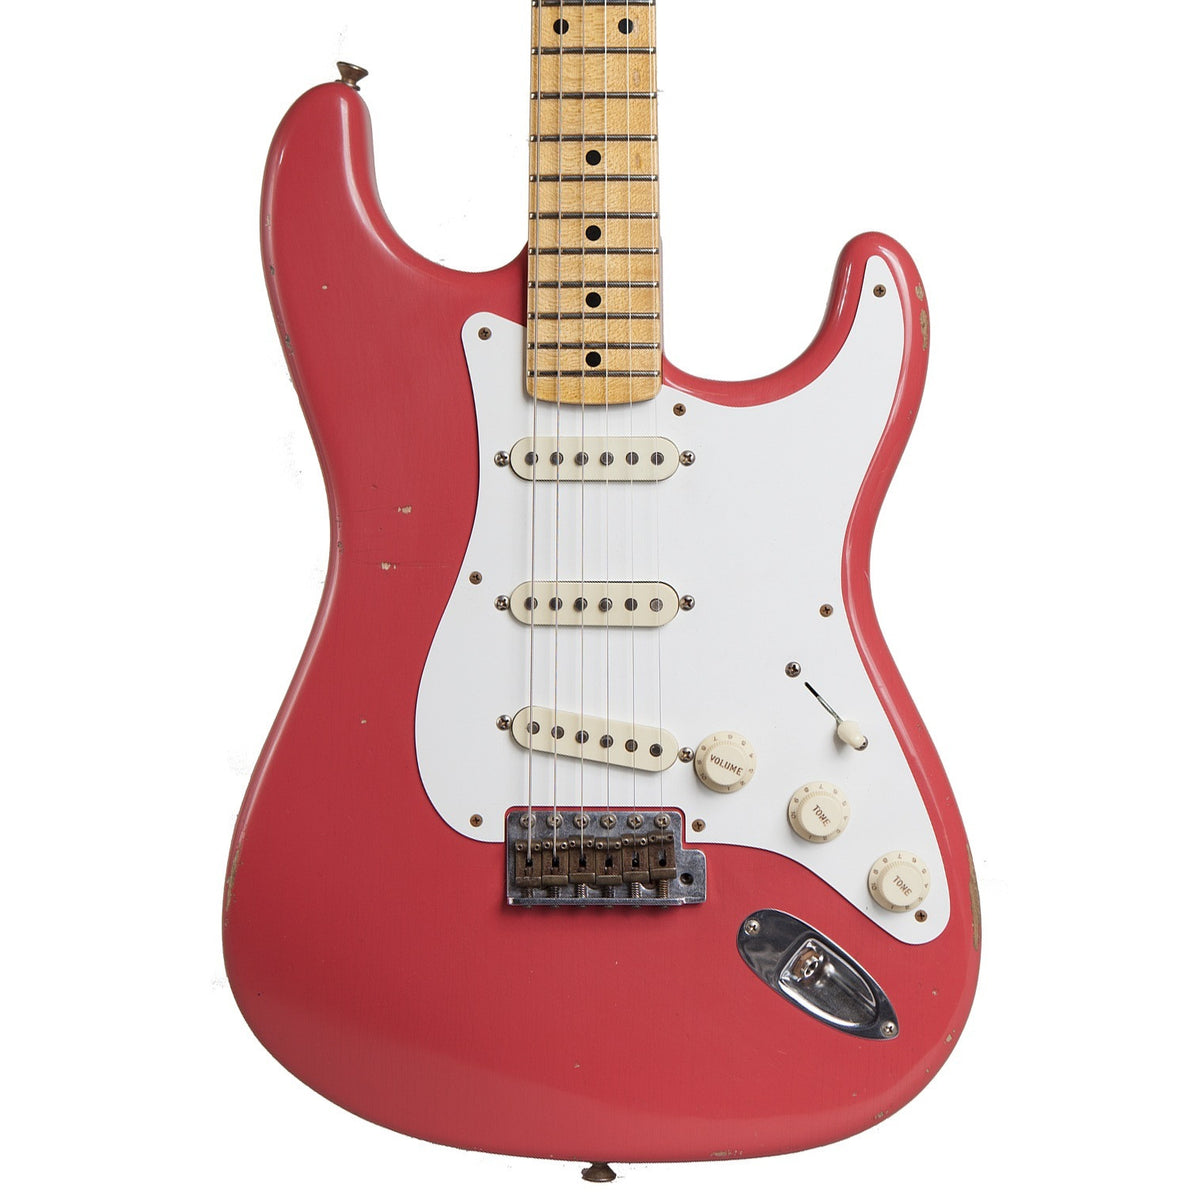 2014 Fender '57 Stratocaster Journeyman Relic, Faded Fiesta Red - Garrett Park Guitars  - 2